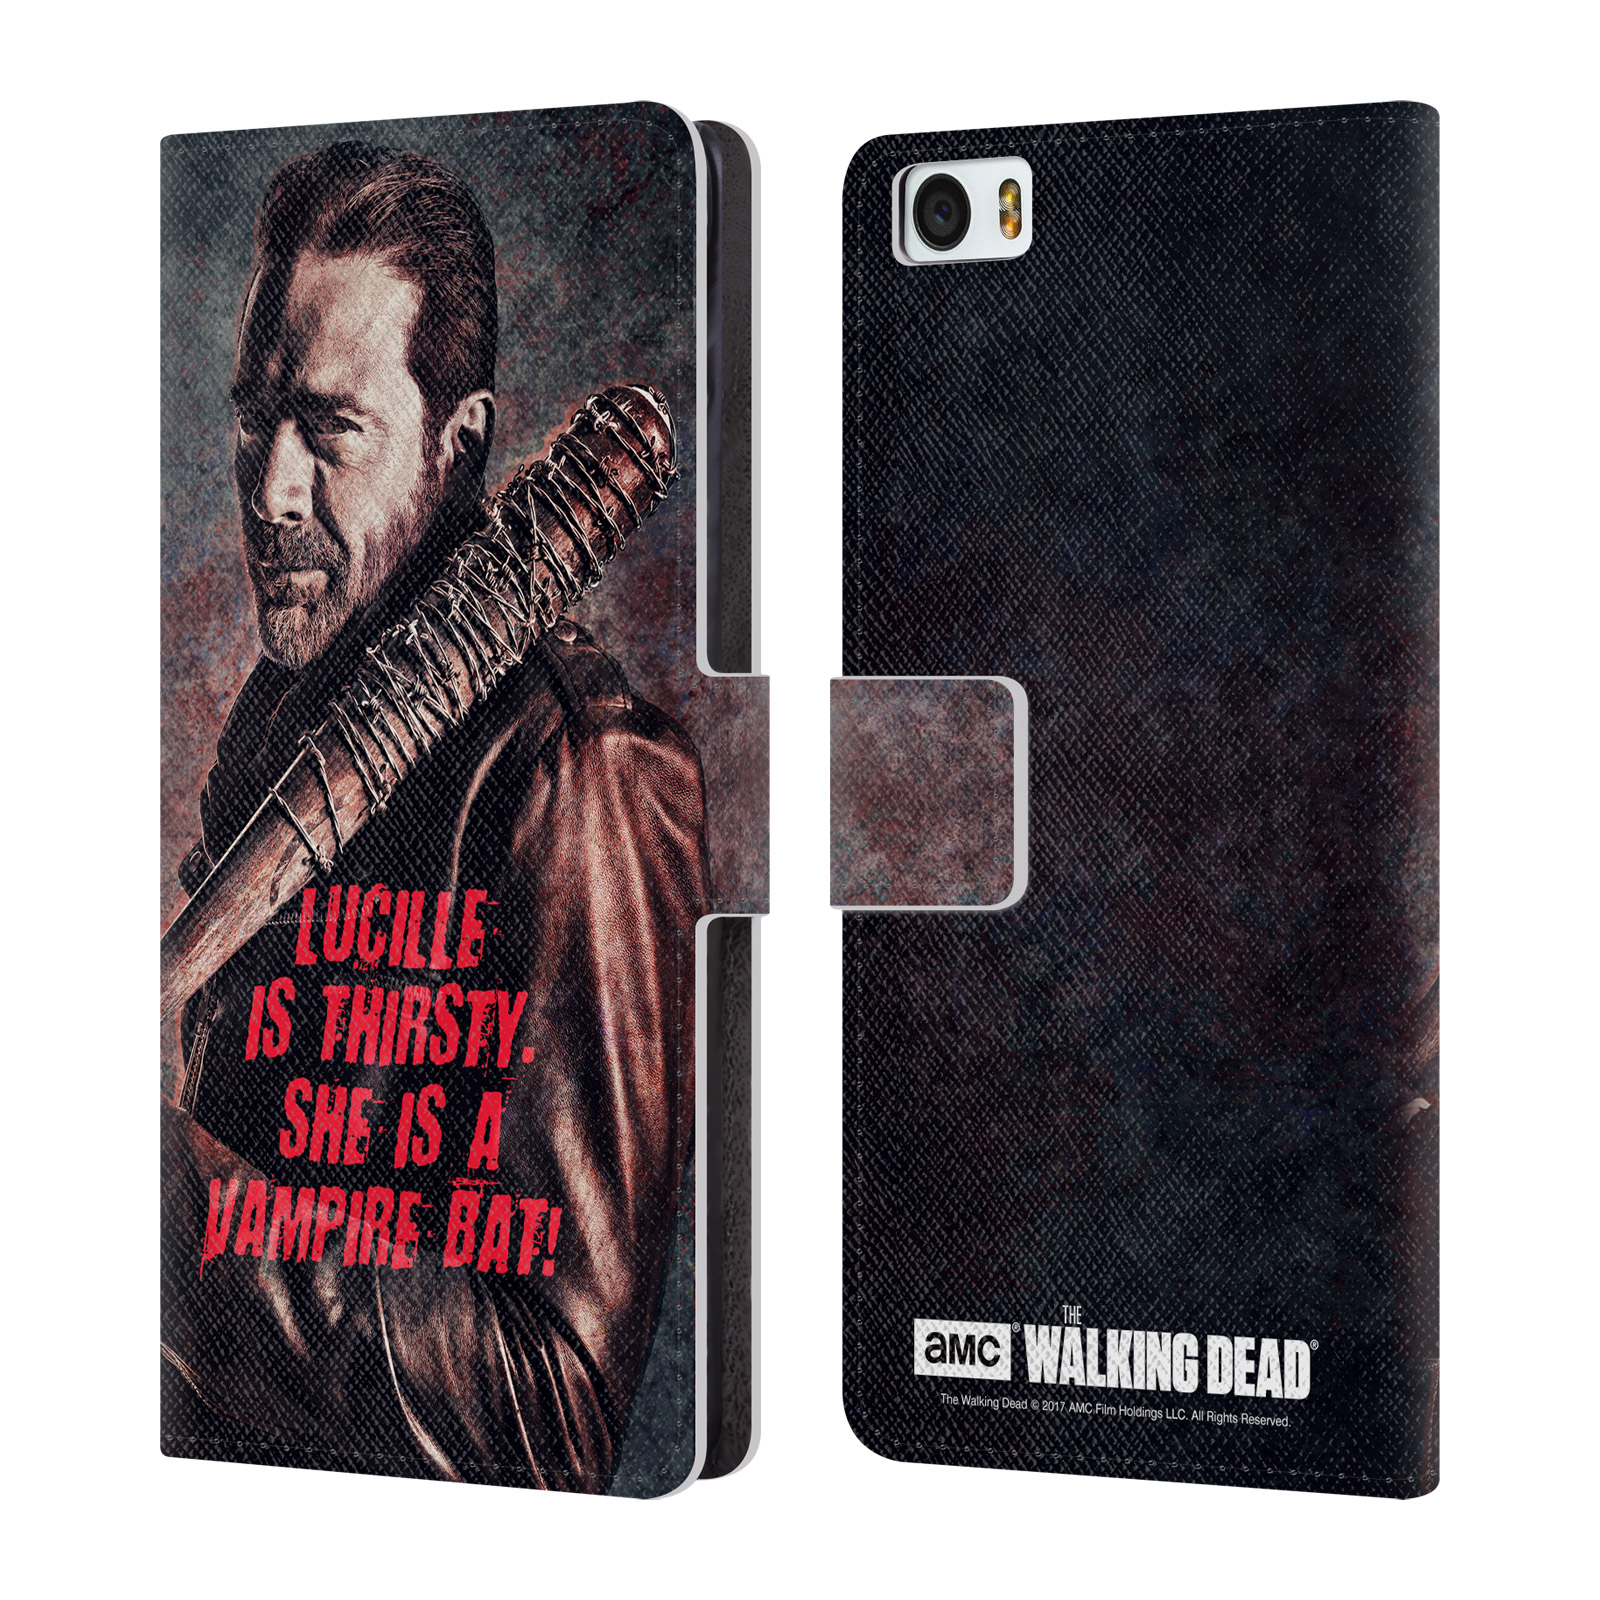 OFFICIAL-AMC-THE-WALKING-DEAD-NEGAN-LEATHER-BOOK-WALLET-CASE-FOR-XIAOMI-PHONES